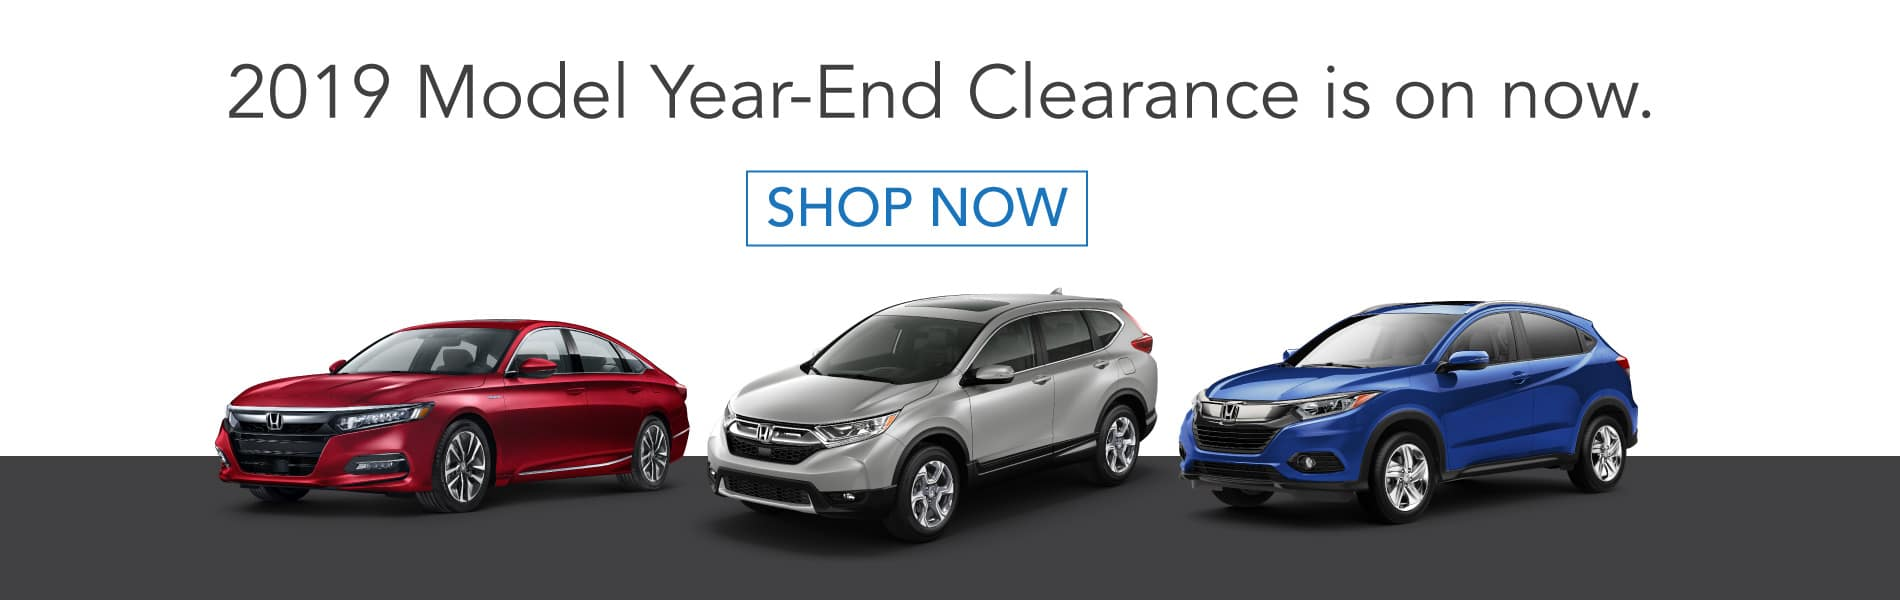 2019 Model Year-End Clearance on all remaining 2019 and 2018 model year honda vehicles